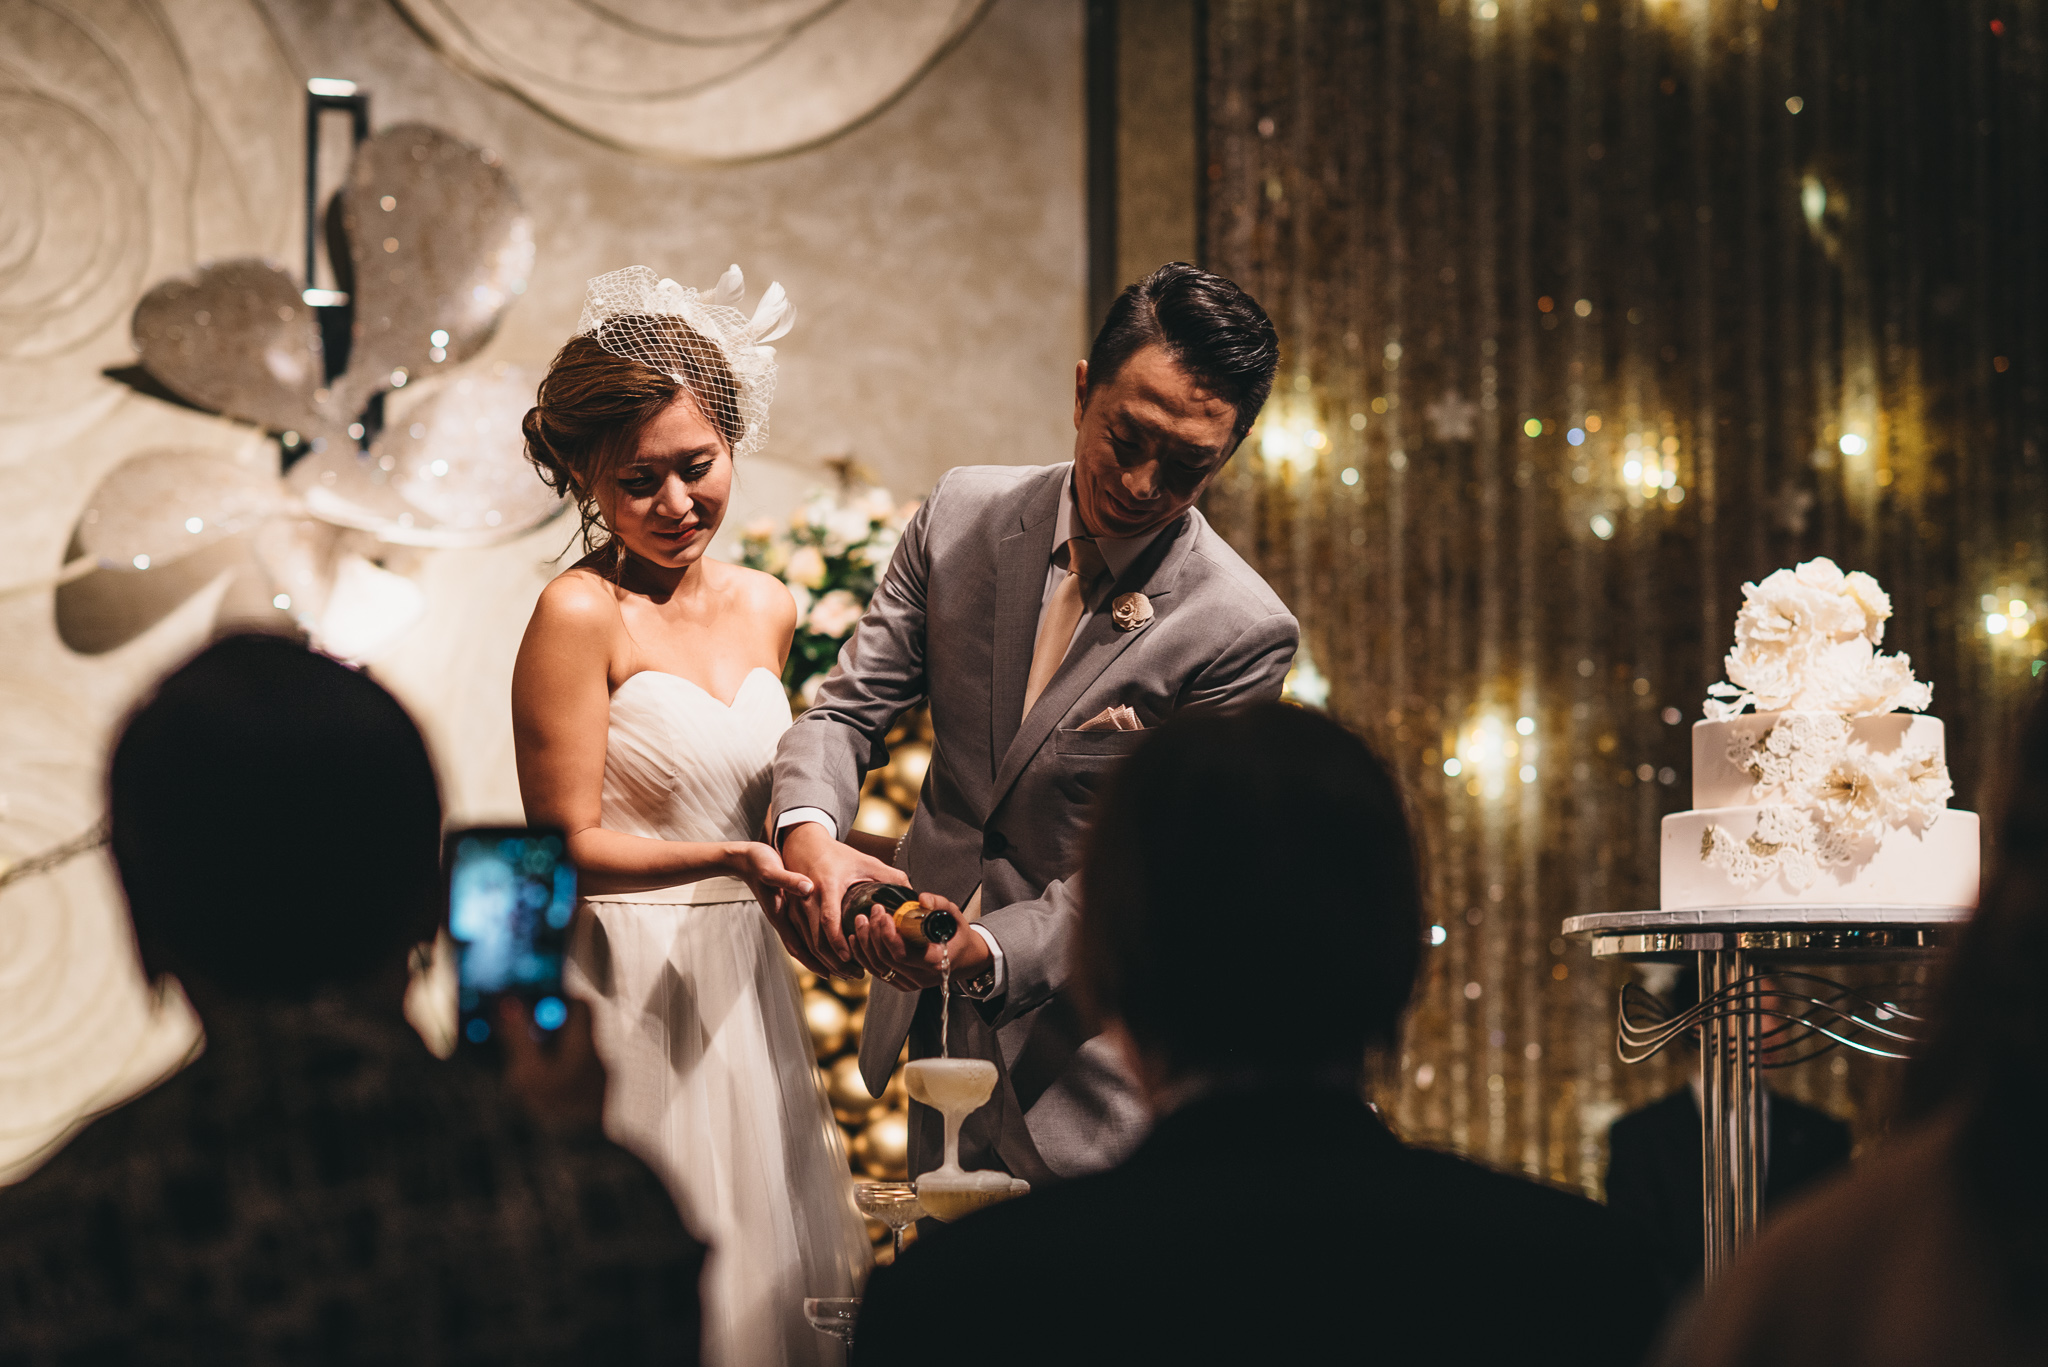 Justin & Winnie Wedding Day Highlights (resized for sharing) - 155.jpg